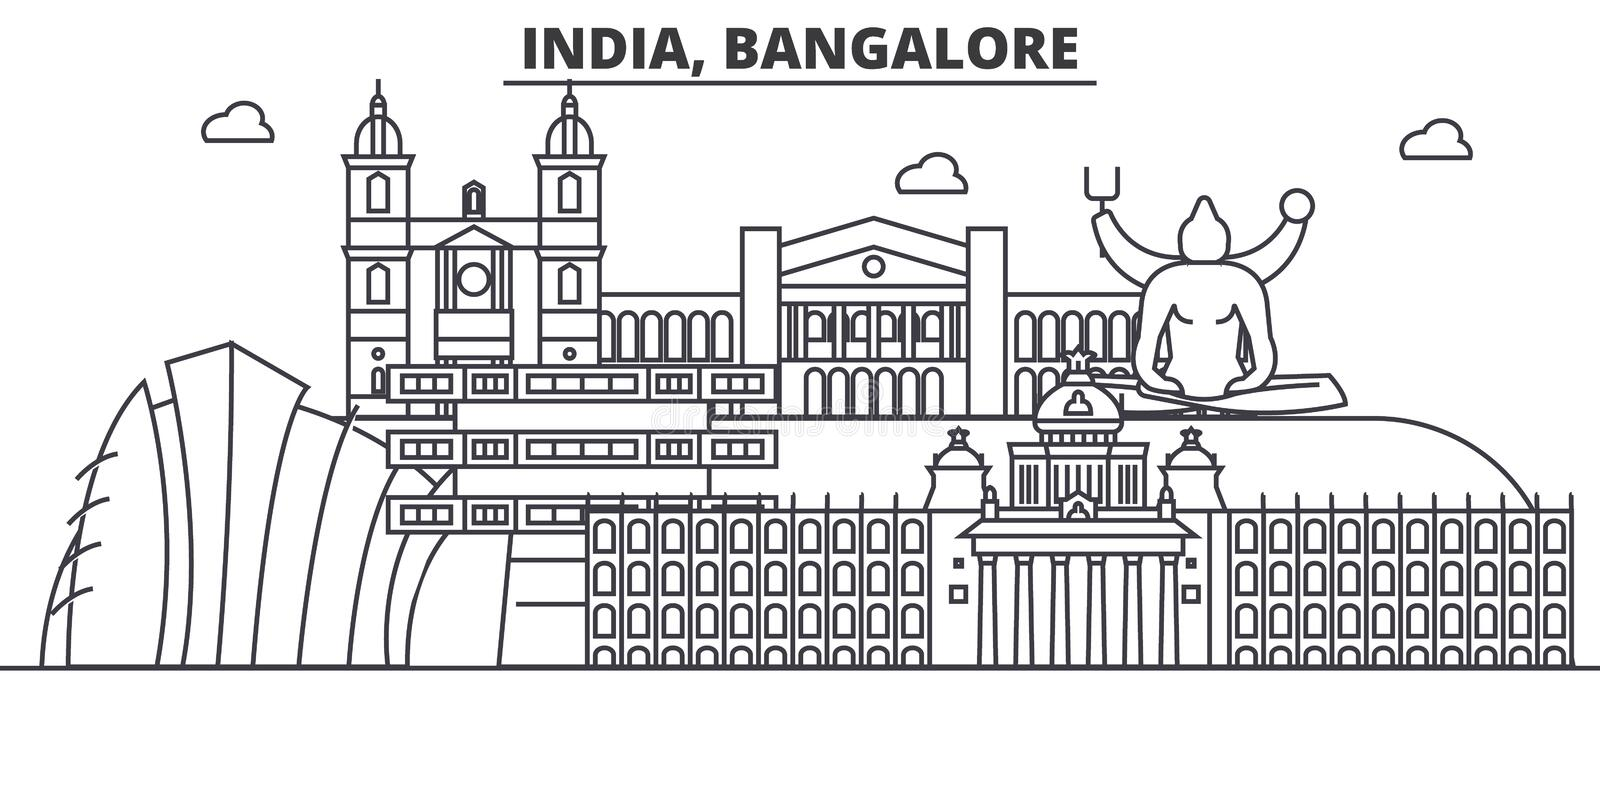 India, Bangalore architecture line skyline illustration. Linear vector cityscape with famous landmarks, city sights. Design icons. Editable strokes vector illustration